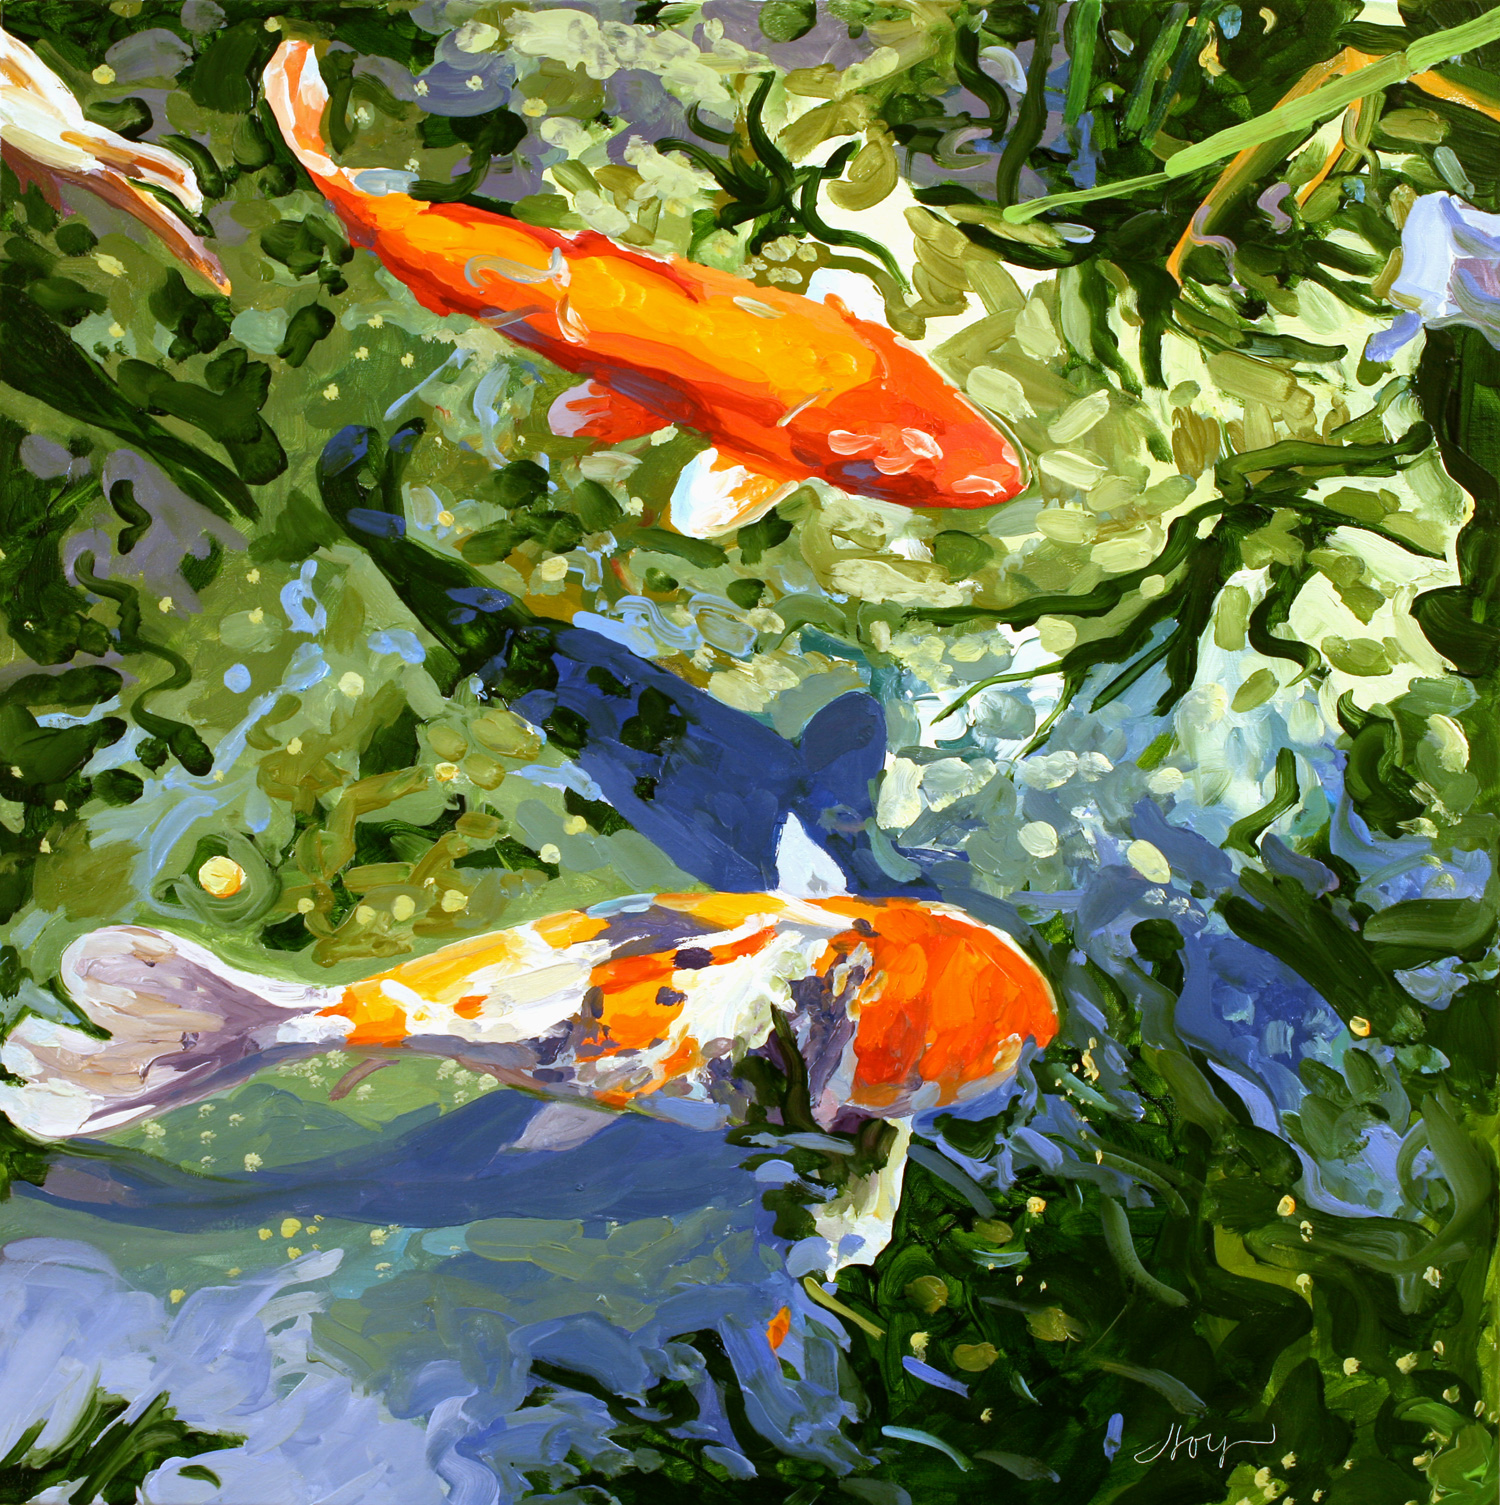 koi fish paintings koi paintings nature paintings koi artwork linda holt. Black Bedroom Furniture Sets. Home Design Ideas